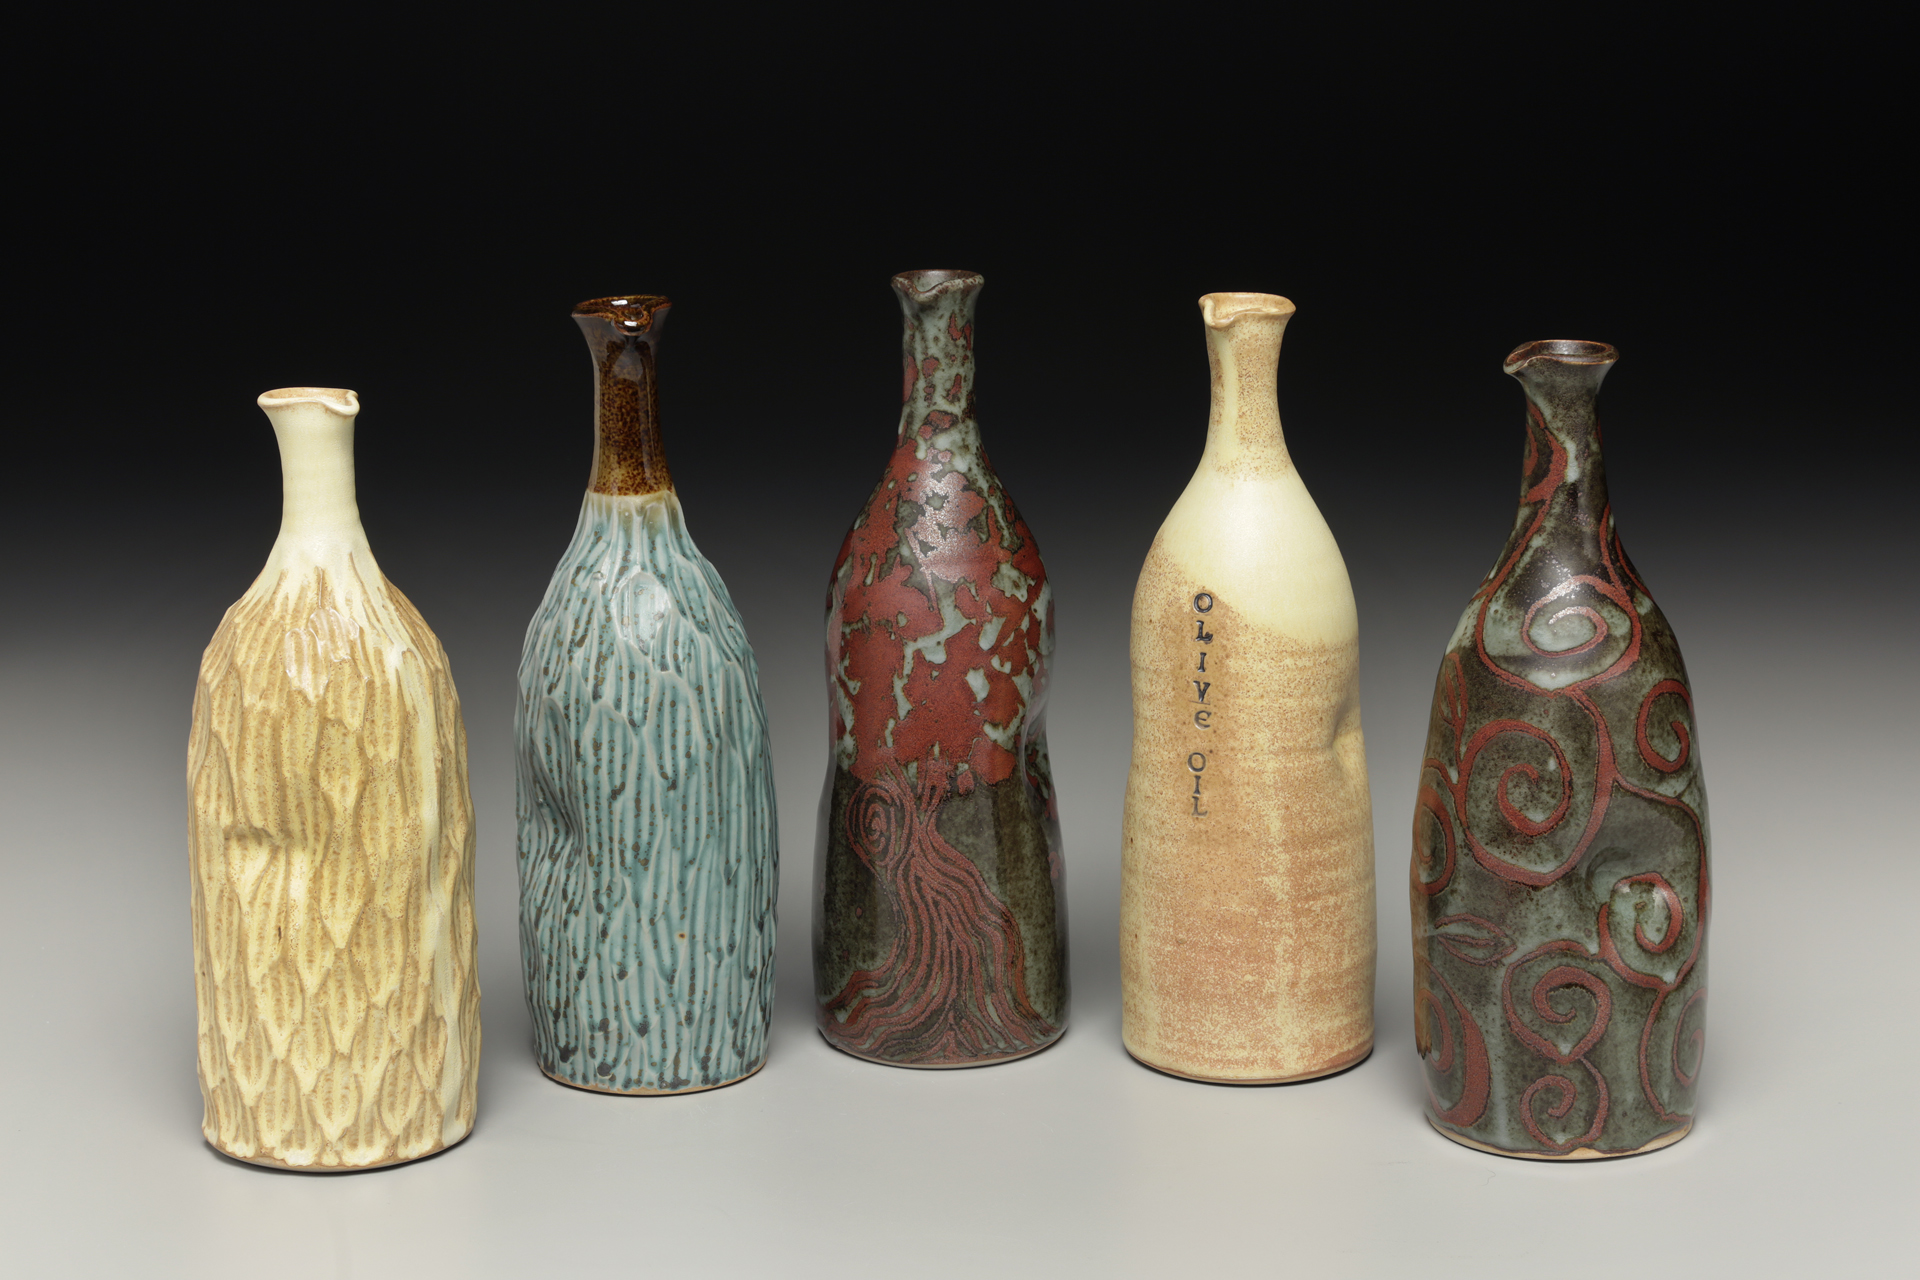 Bottles by Lori Theriault